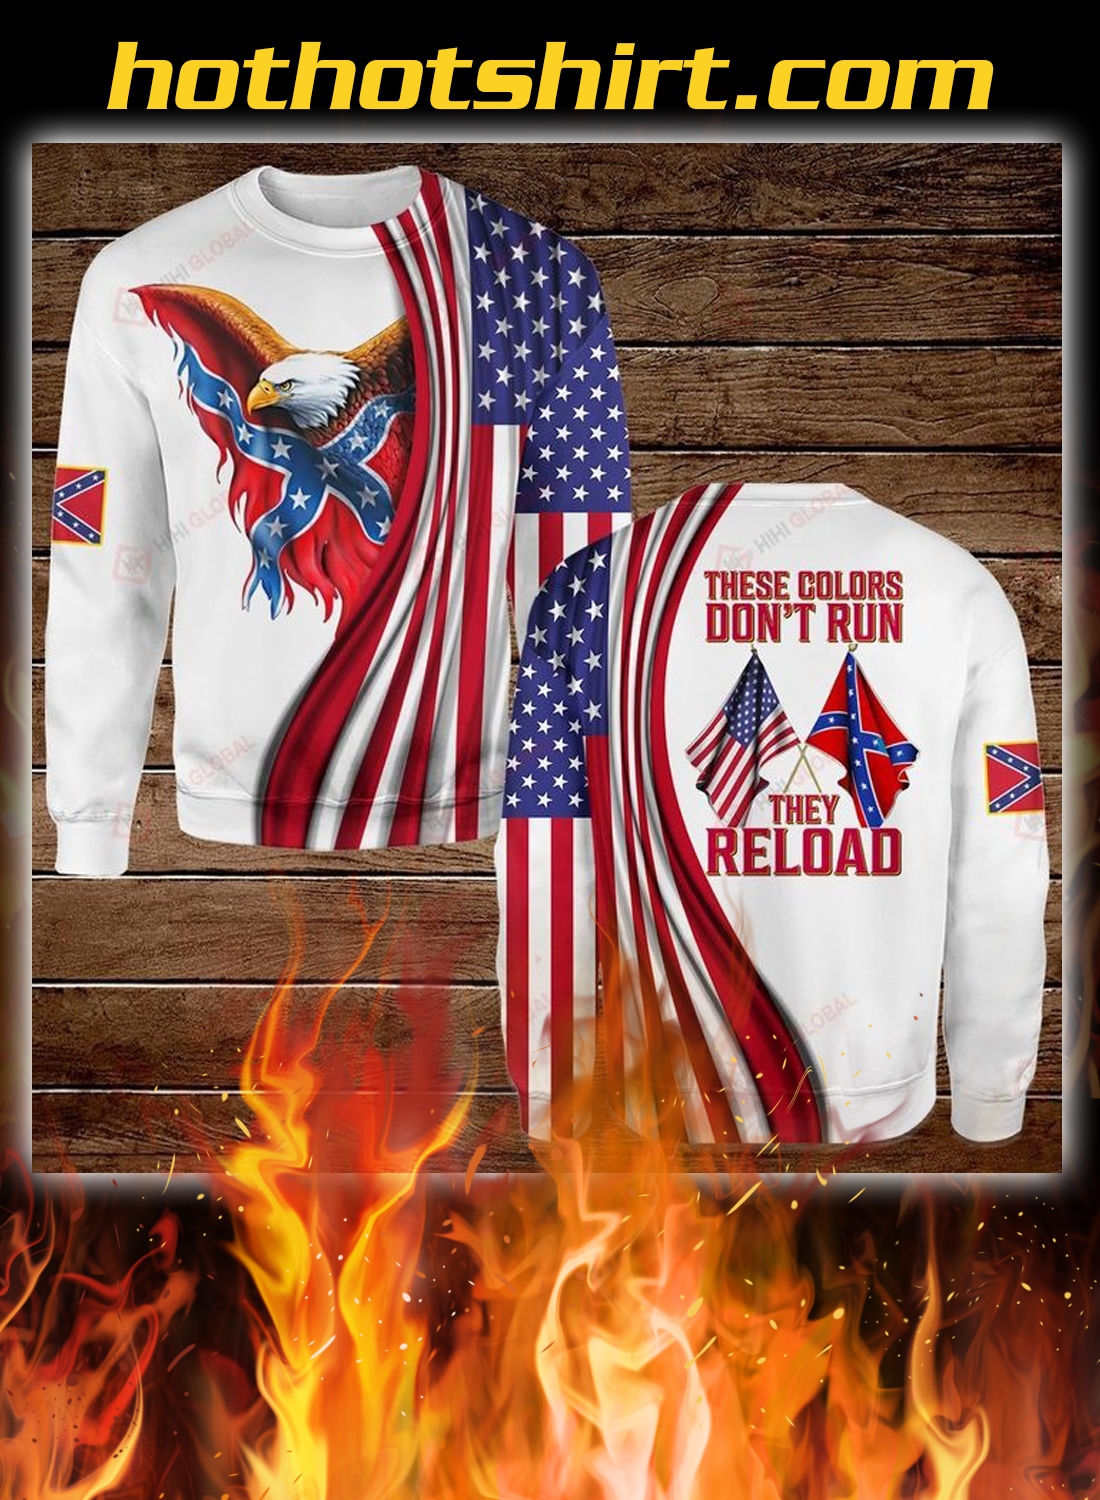 Confederate states of america flag these colors don't run they reload sweatshirt